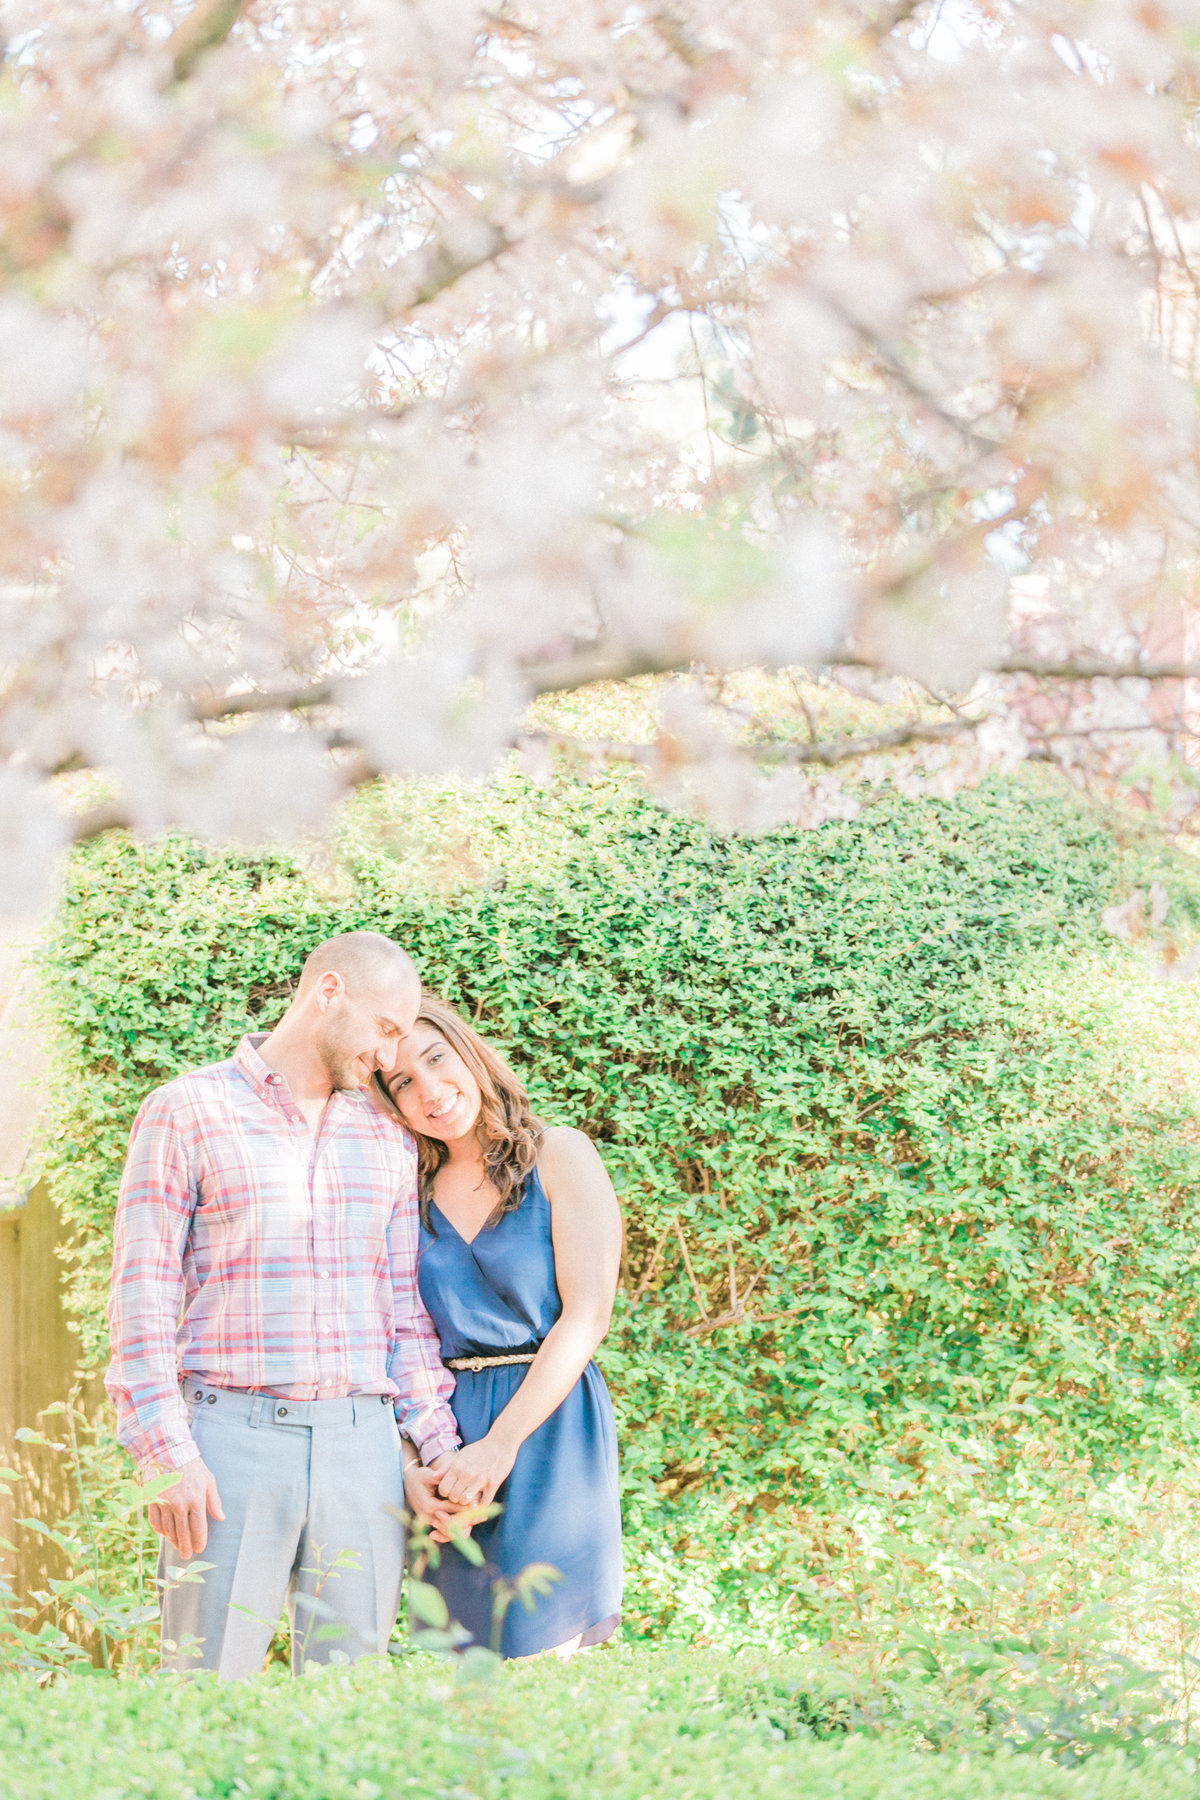 Napa Valley Engagement Under Cherry Blossom Tree